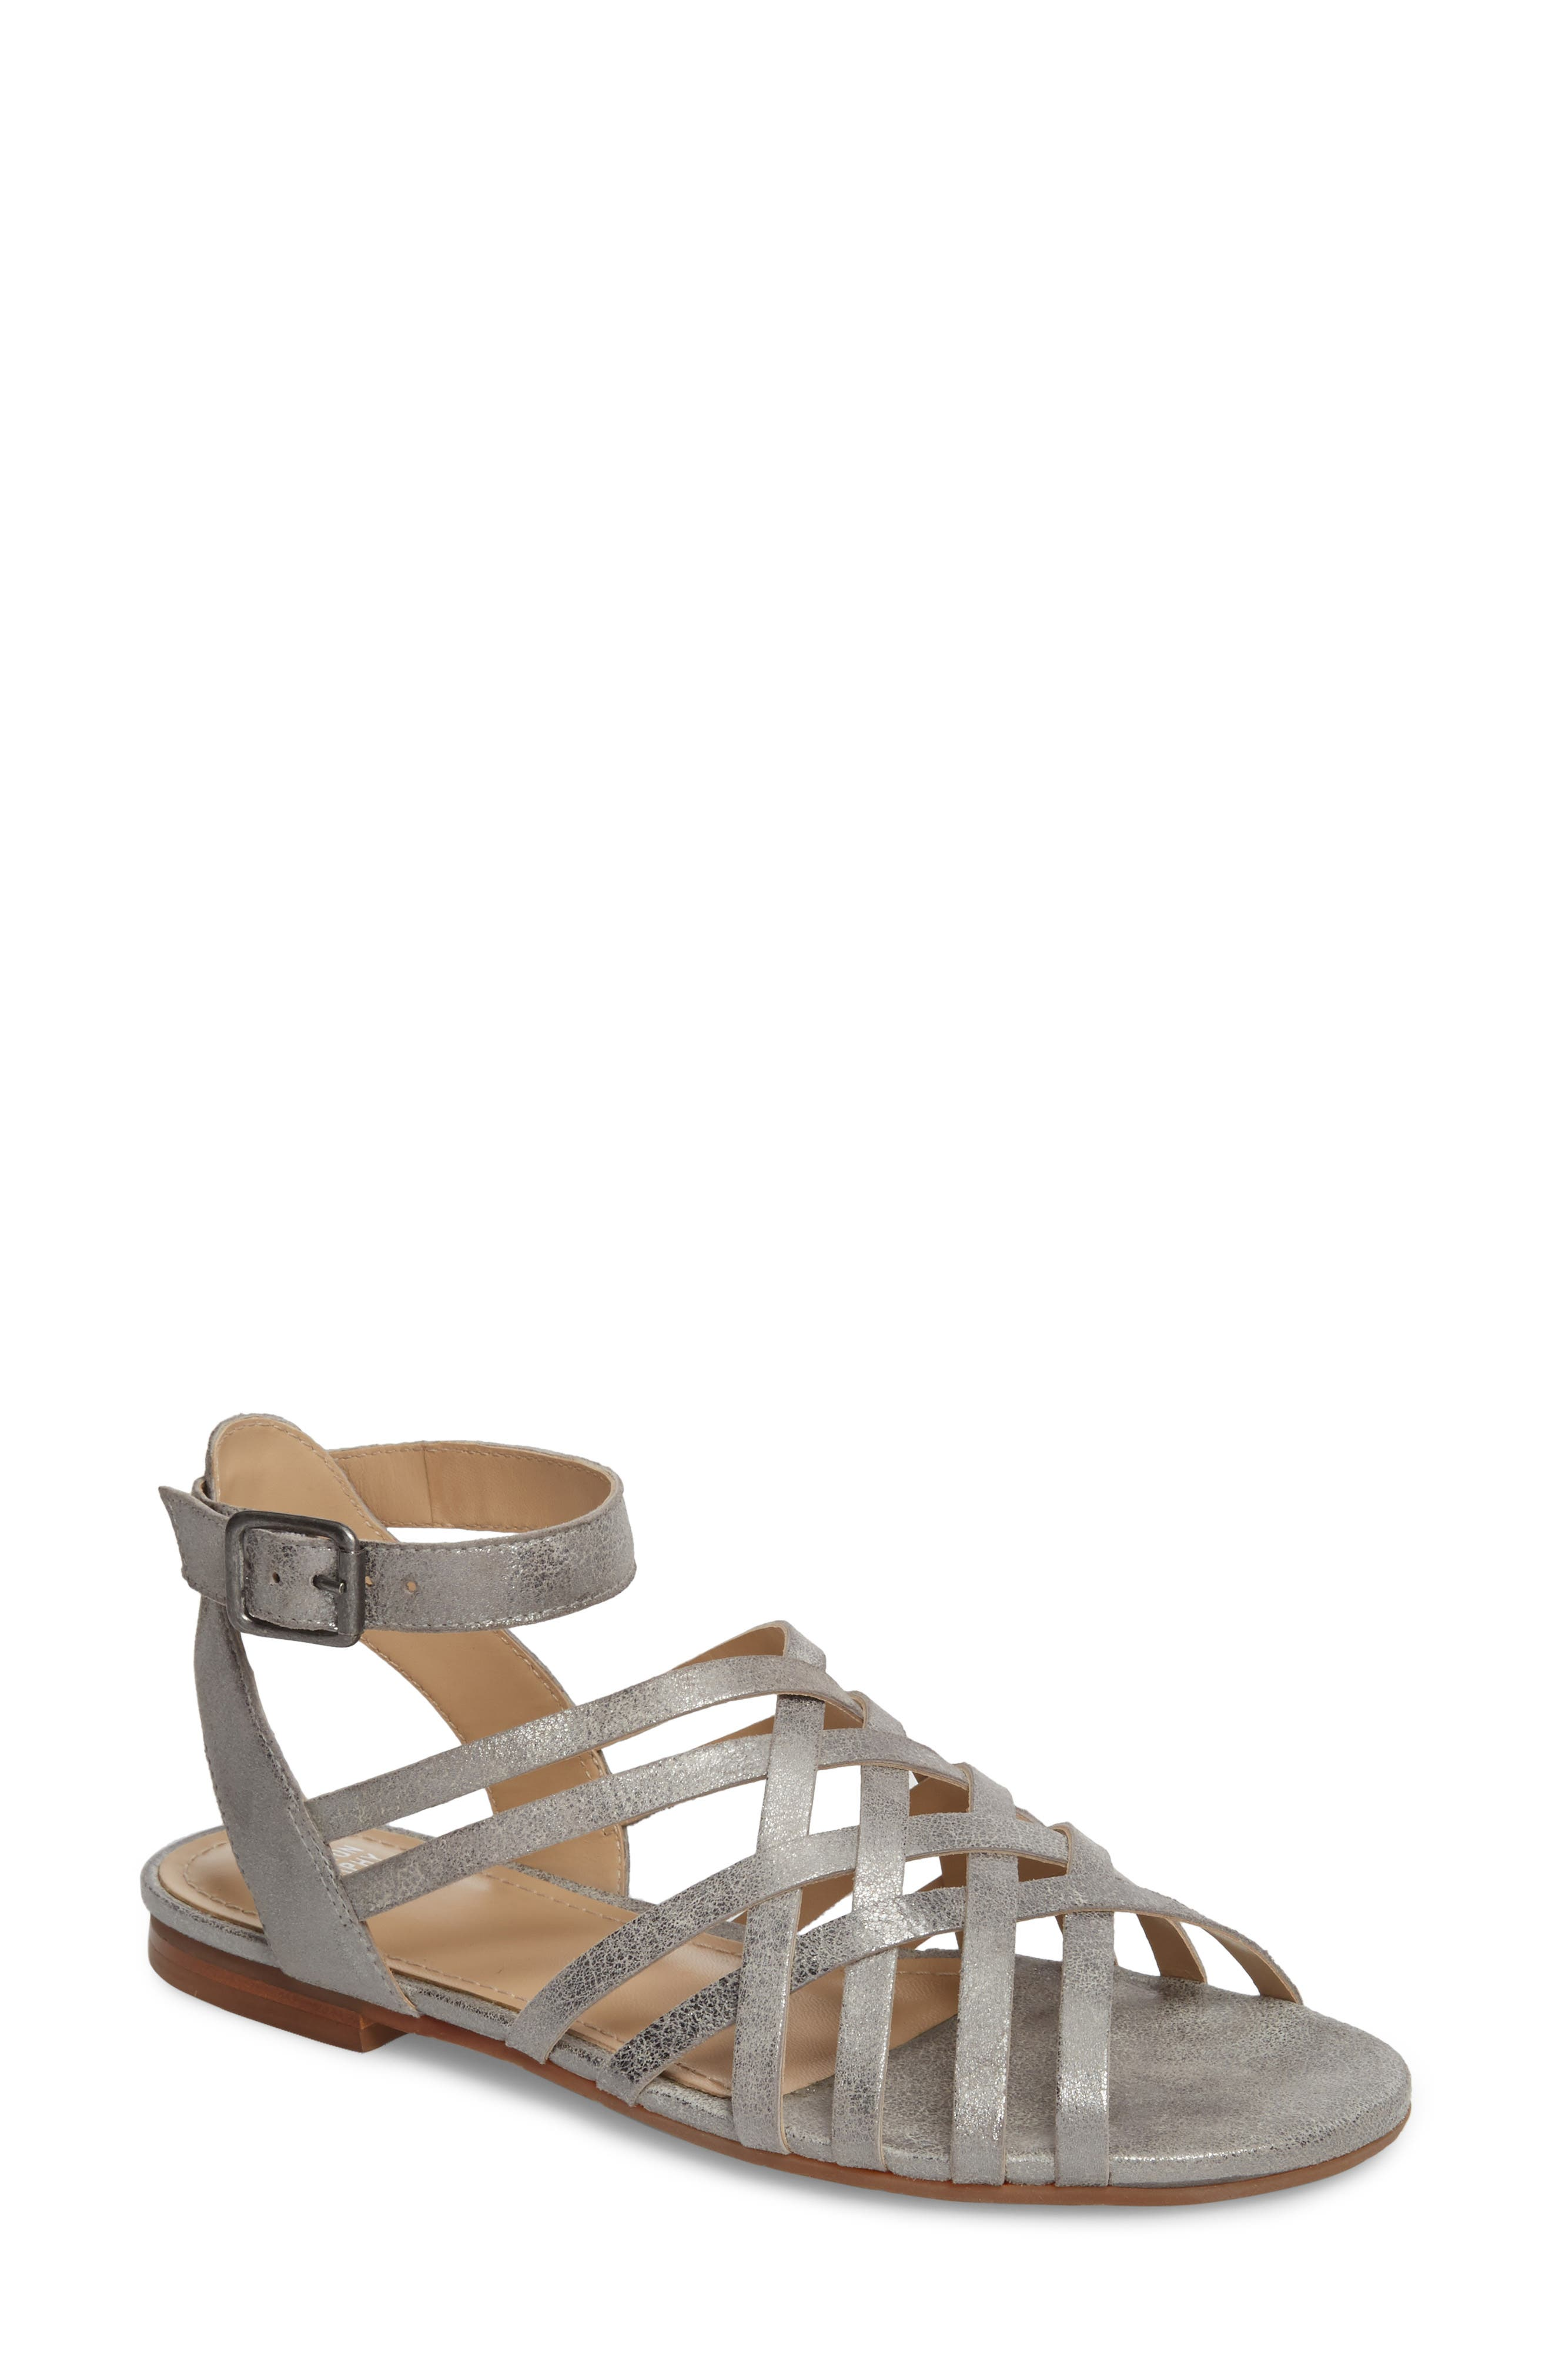 Hallie Sandal,                             Main thumbnail 1, color,                             PEWTER LEATHER